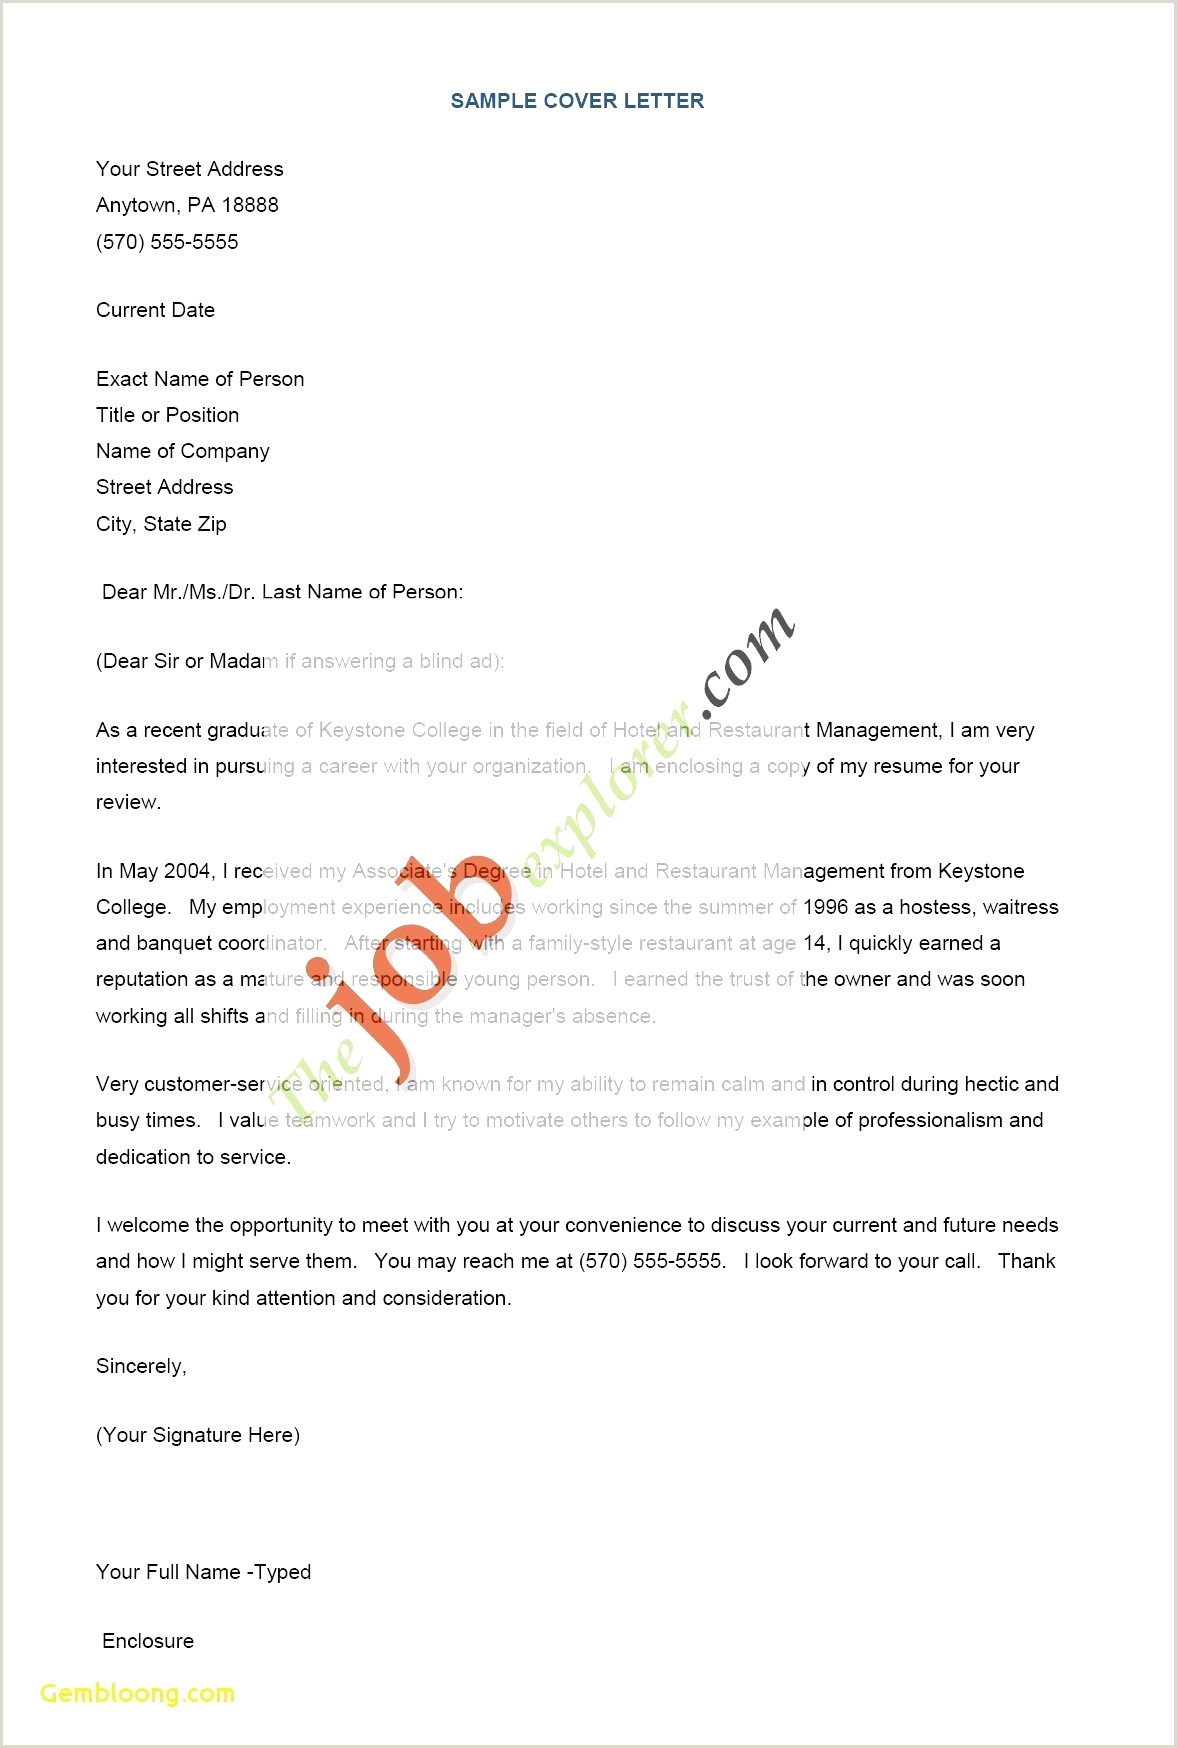 Cover Letter for Recent Graduate